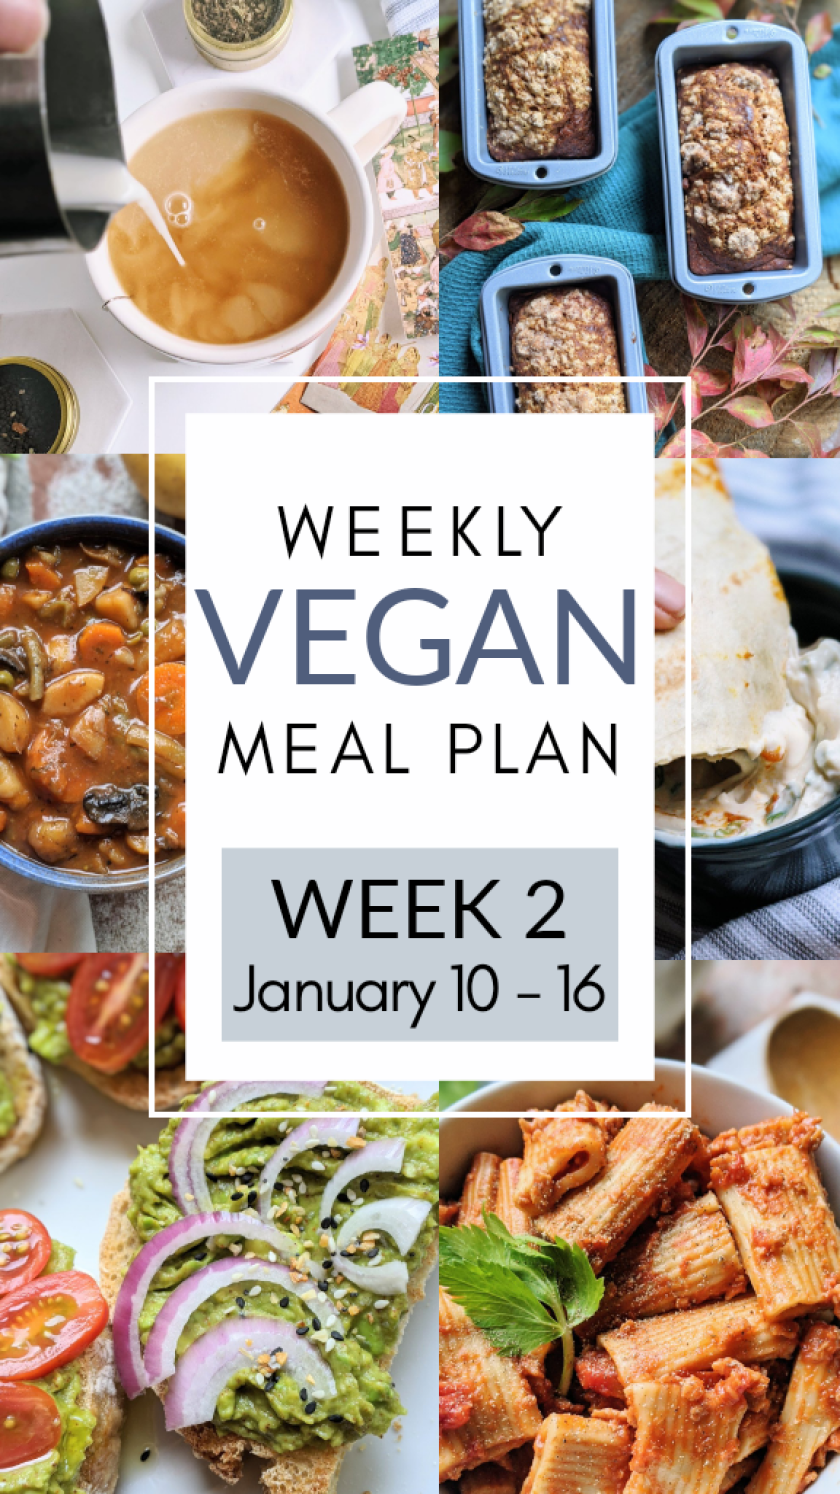 veganuary weekly vegan meal plan ideas recipes healthy vegan family recipes kids will love healthy meatless meal ideas healthier plant based diet recipes and foods for breakfast lunch brunch dinner and bread